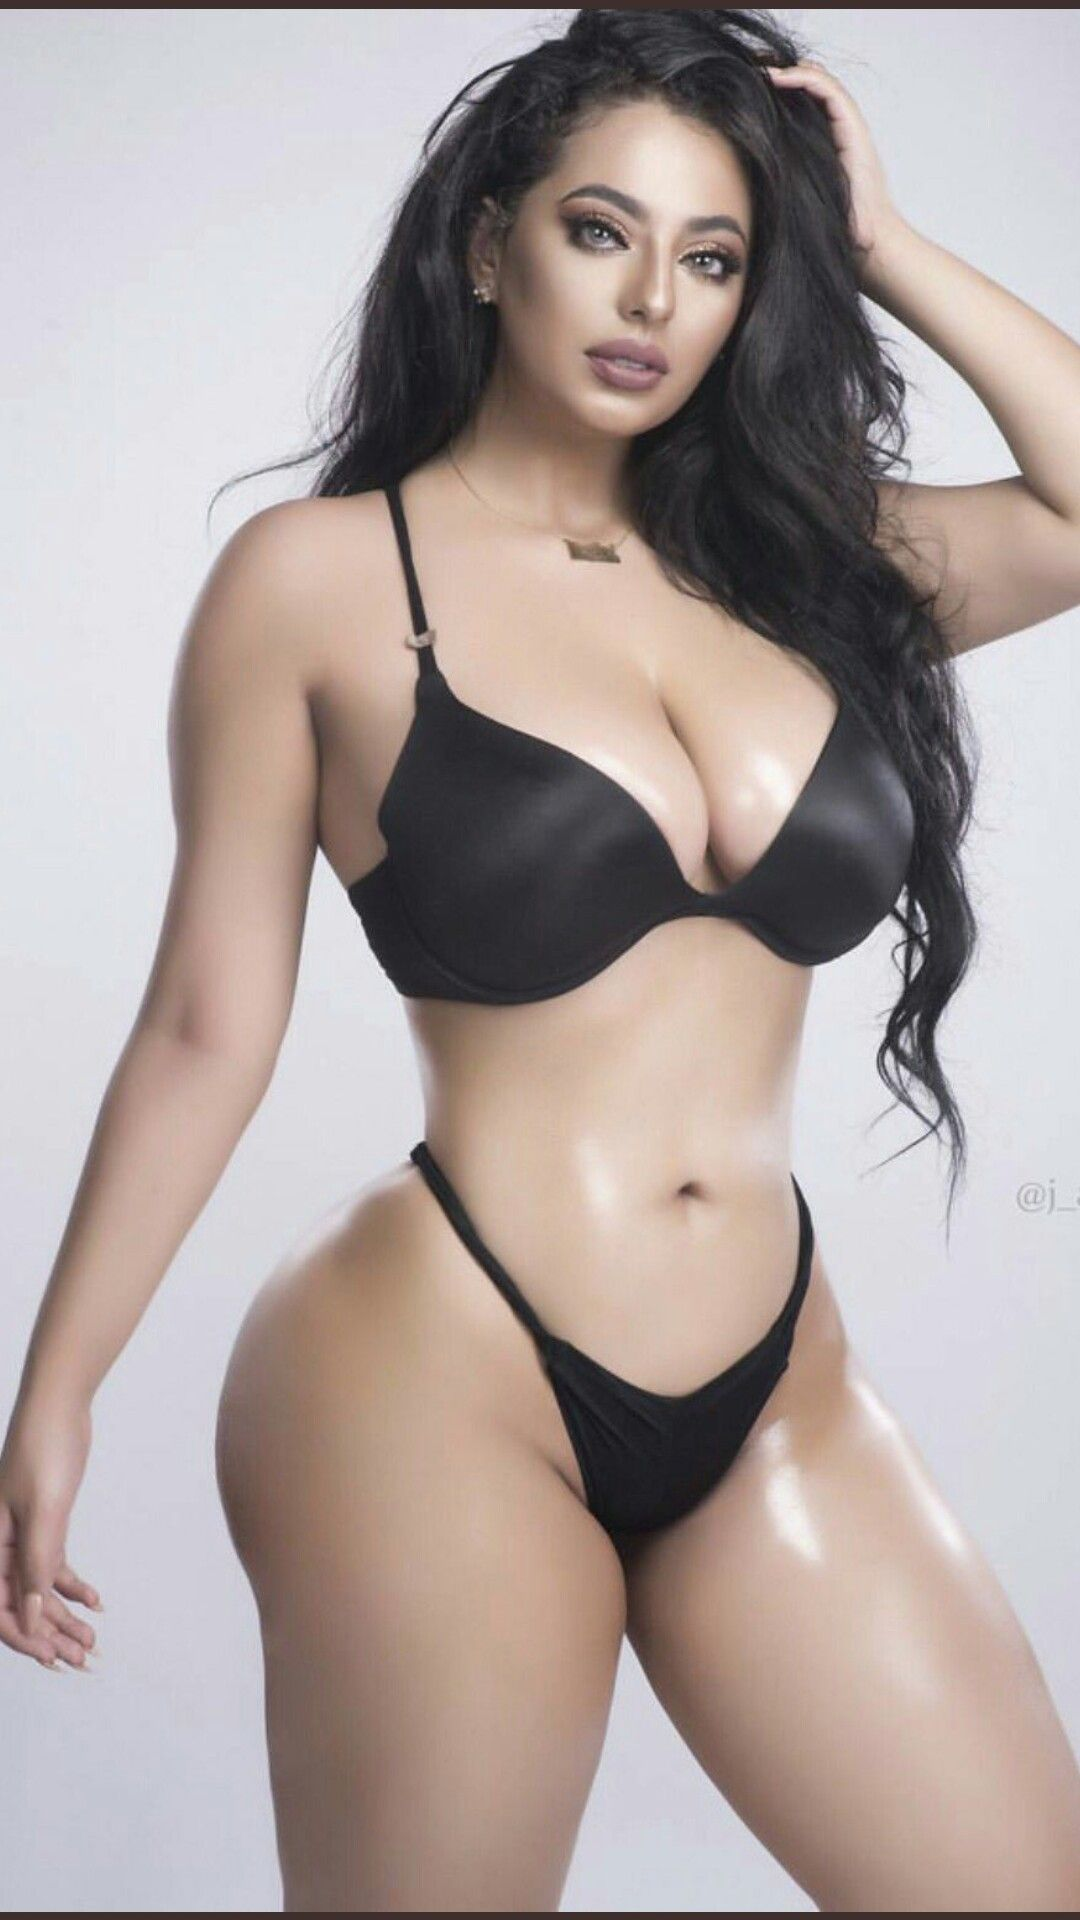 Pin on sexy girls with nice bodies